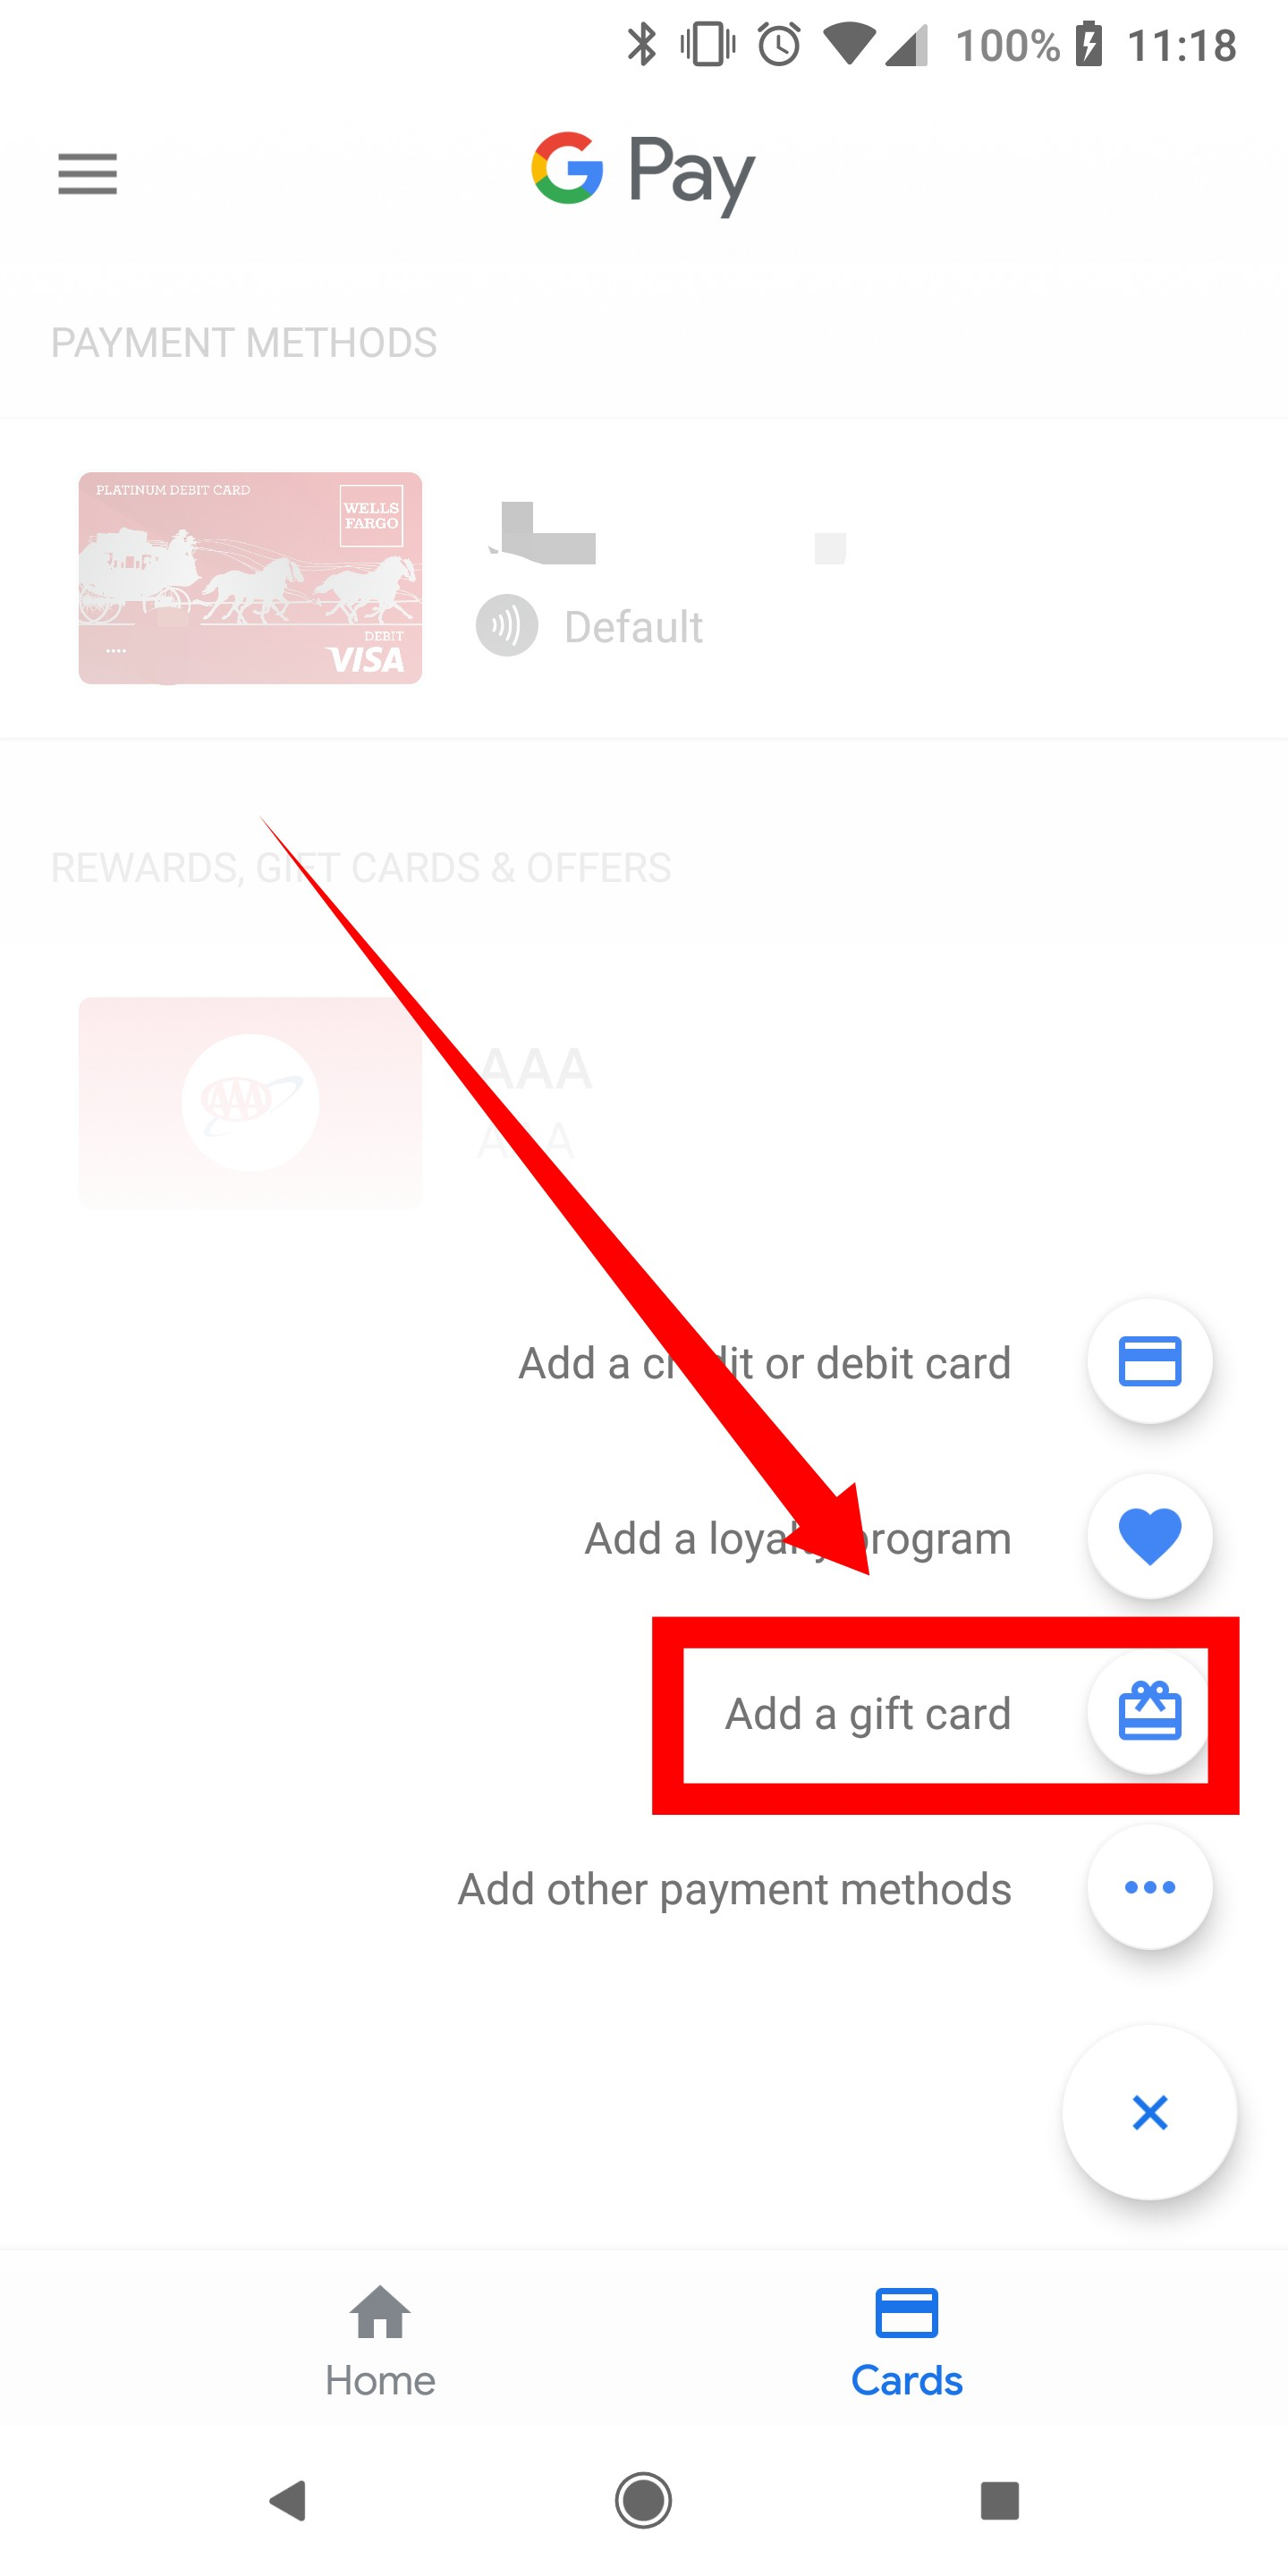 How to add credit/debit cards, gift/loyalty cards, and more